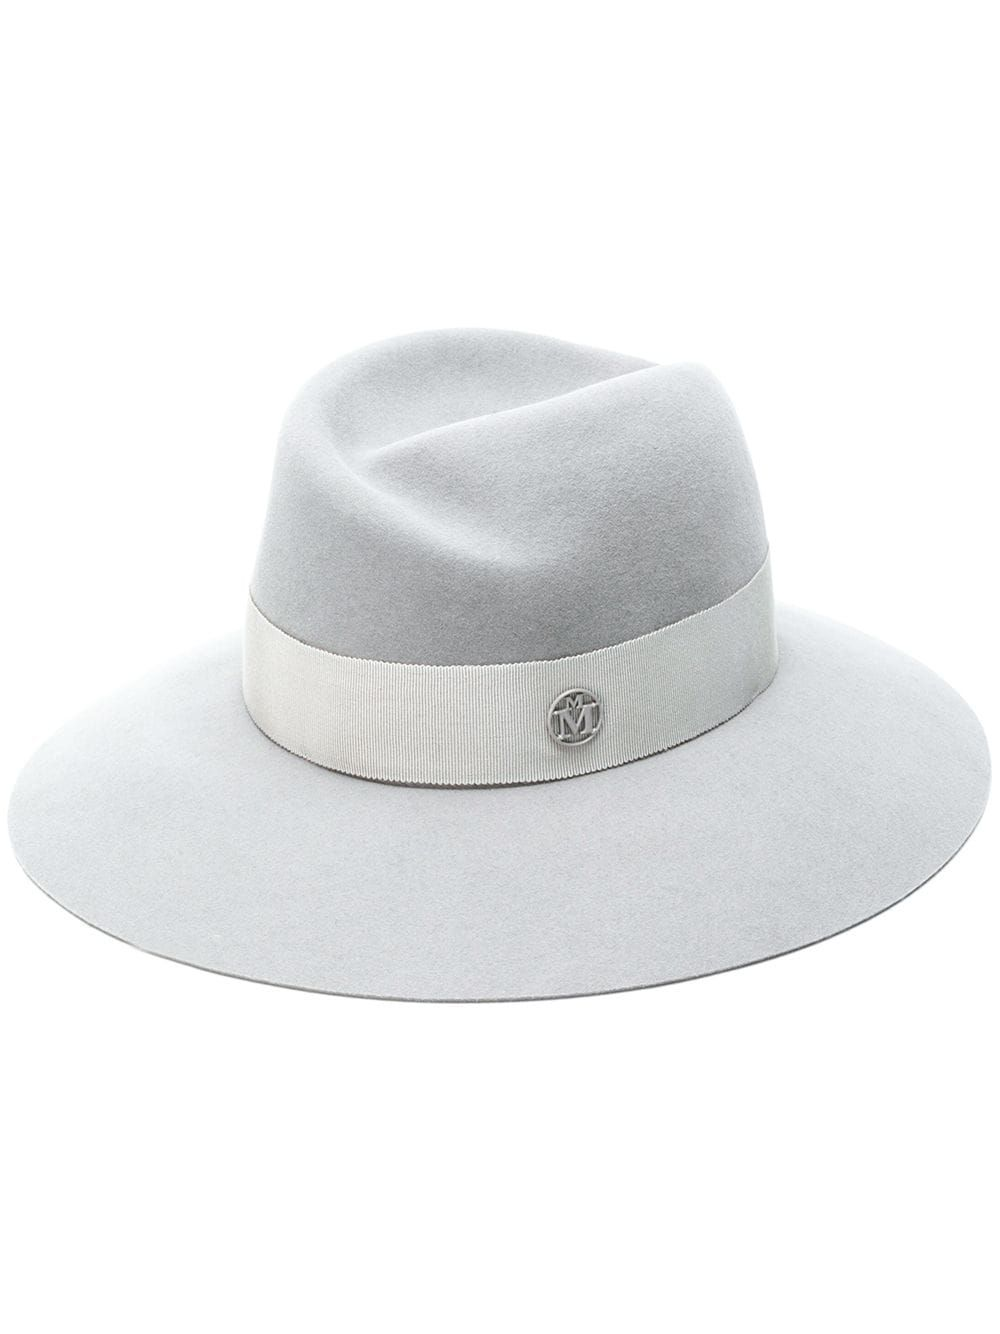 c2304075b Maison Michel trilby hat - Grey in 2019 | Products | Trilby hat ...